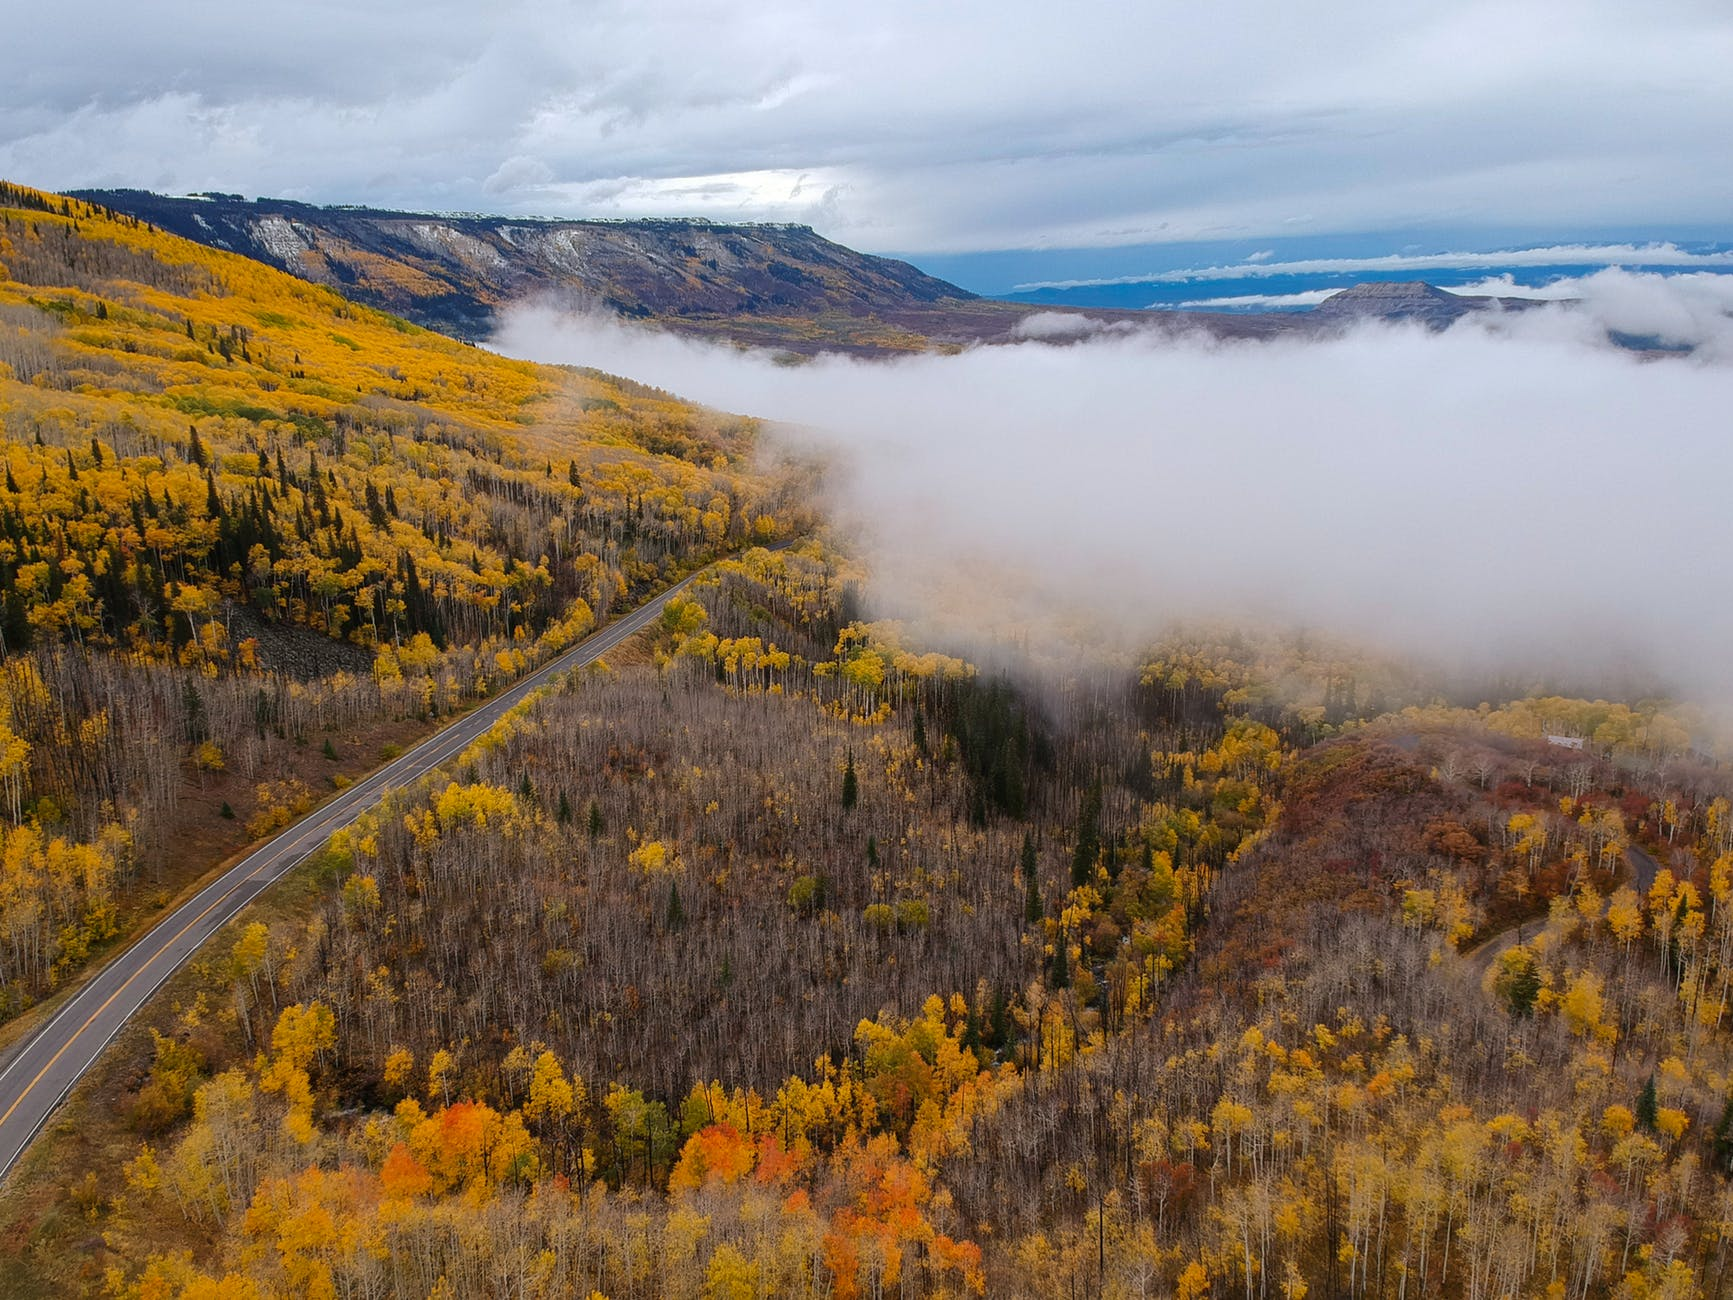 yellow and orange leafed trees above clouds